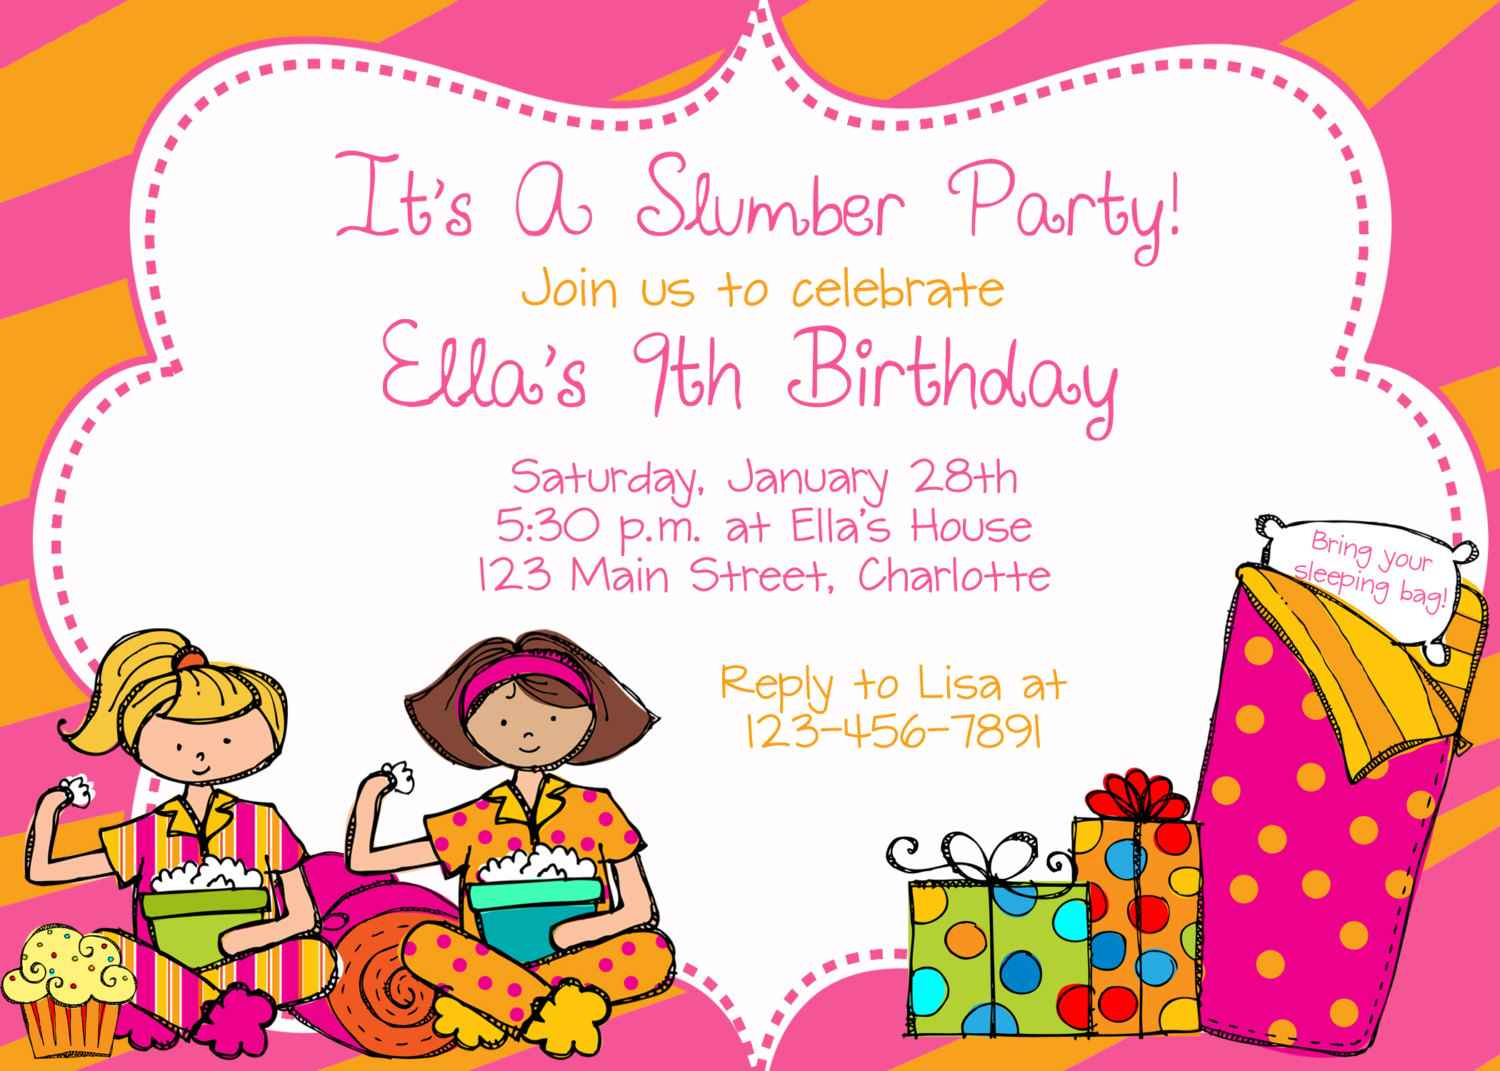 Come and join us clipart birthday party clip free download Sample refusal letter to a birthday party invitation - Clip Art Library clip free download